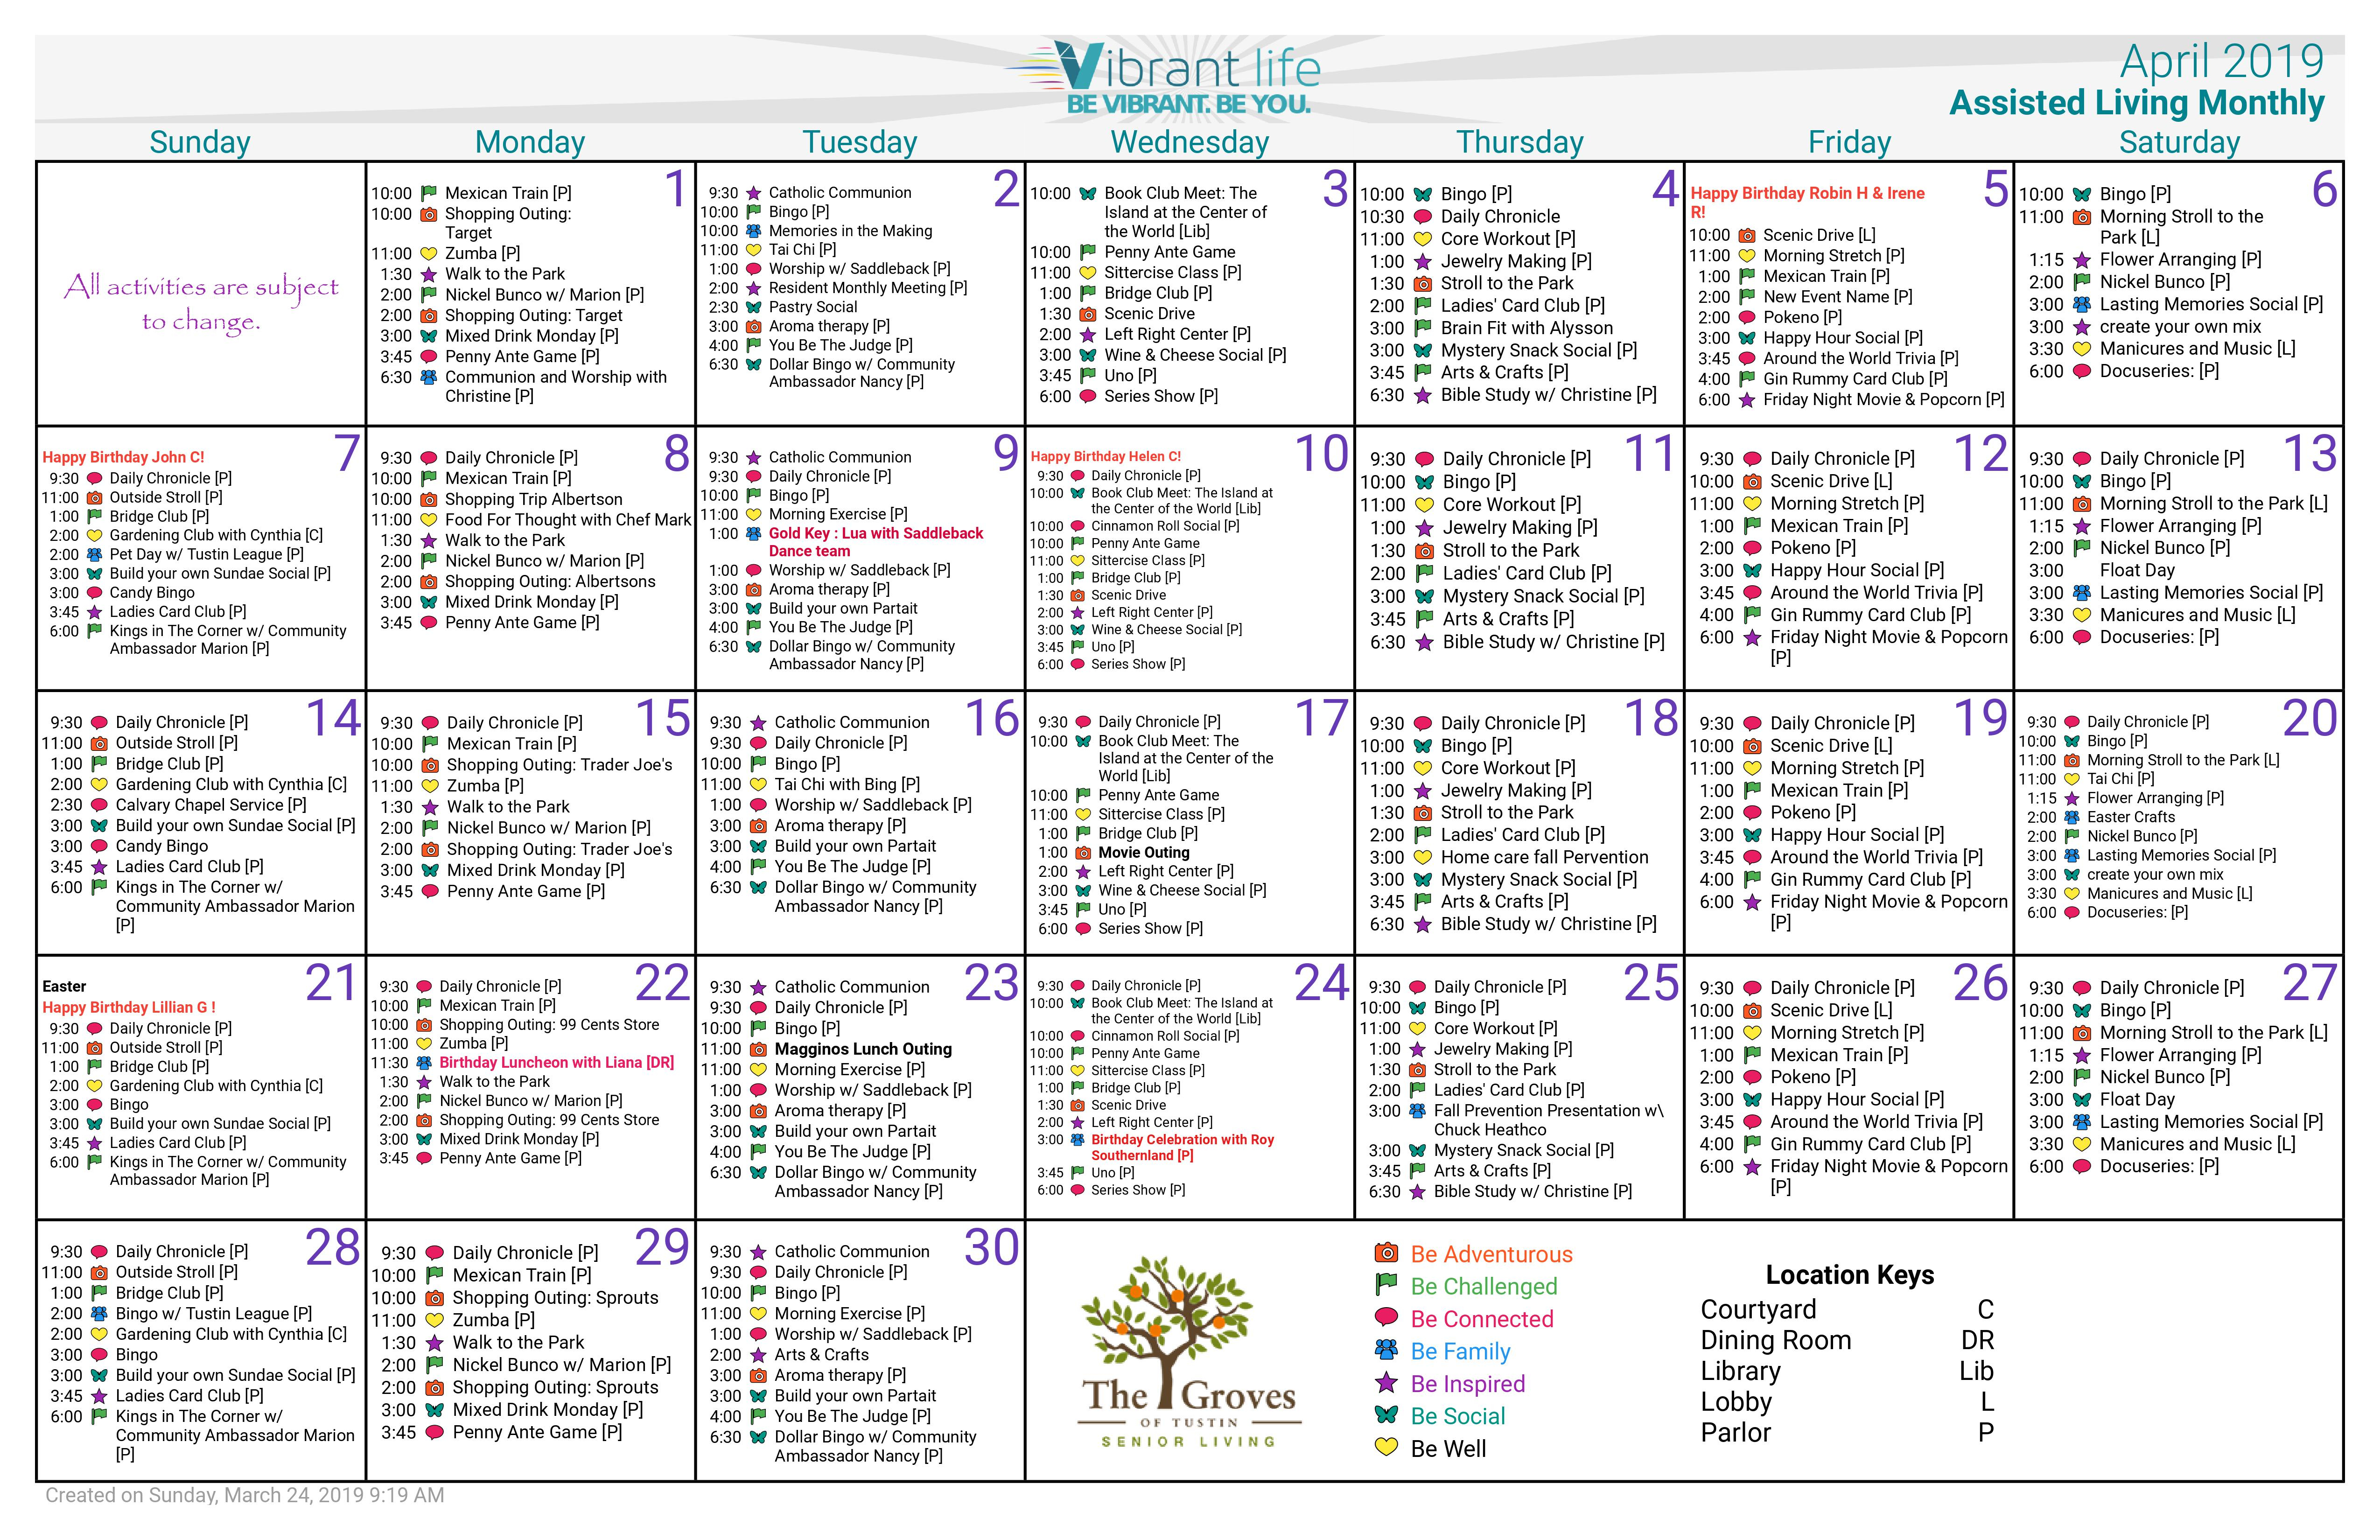 April 2019 Assisted Living Calendar – Groves Of Tustin With Asiisted Living Home Monthly Cactivity Calendar